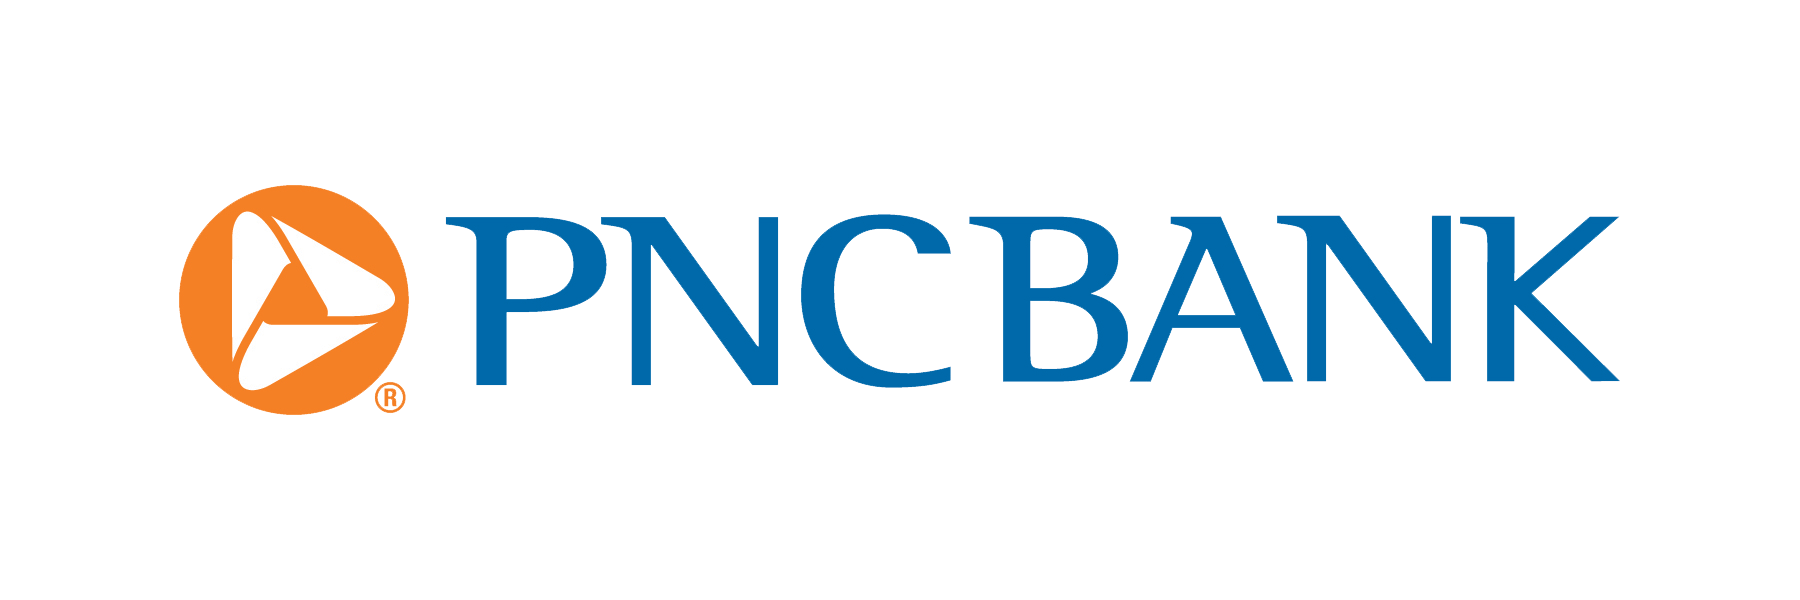 how to write a check pnc